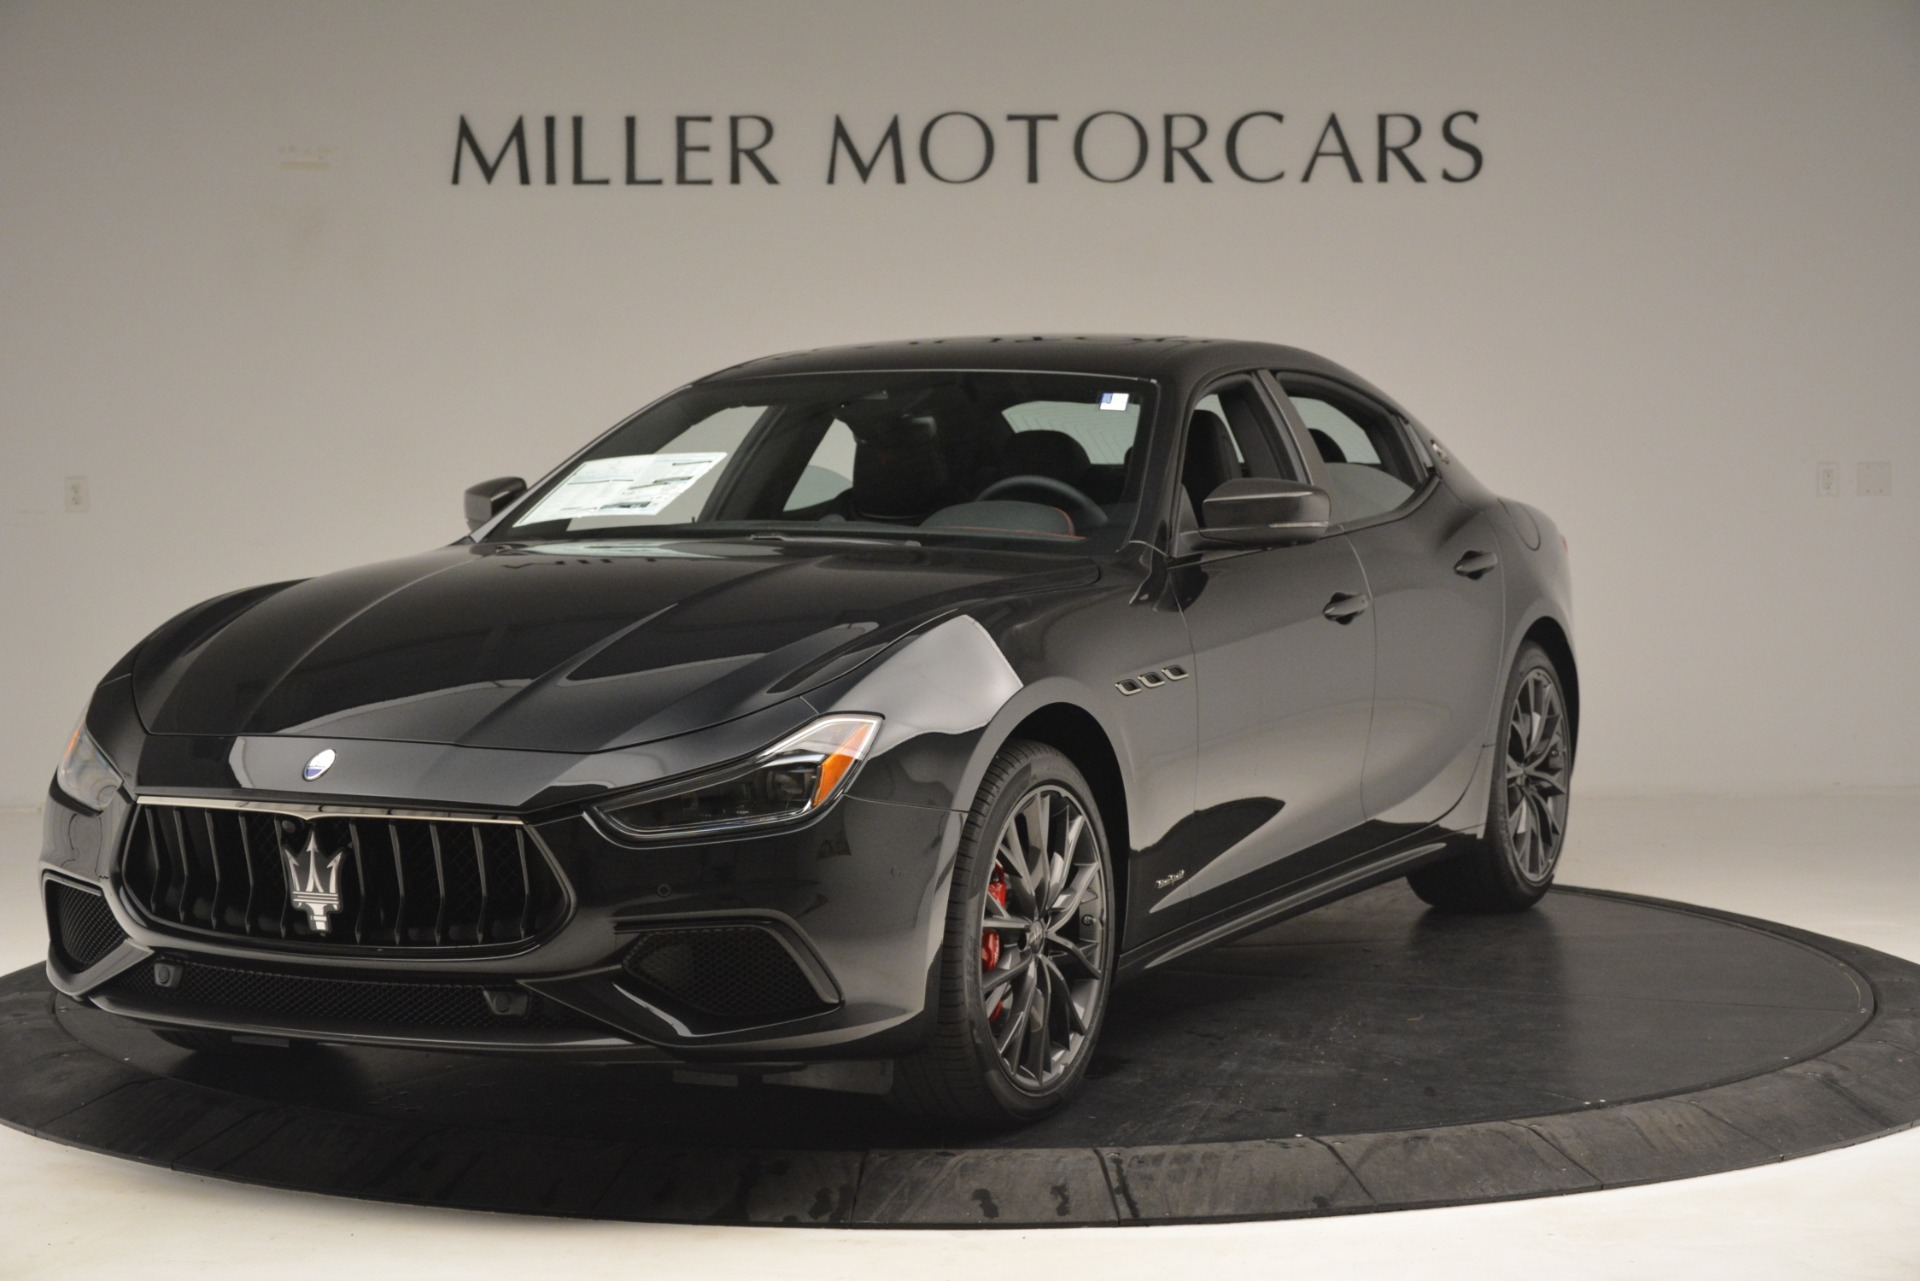 New 2019 Maserati Ghibli S Q4 GranSport for sale Sold at Aston Martin of Greenwich in Greenwich CT 06830 1